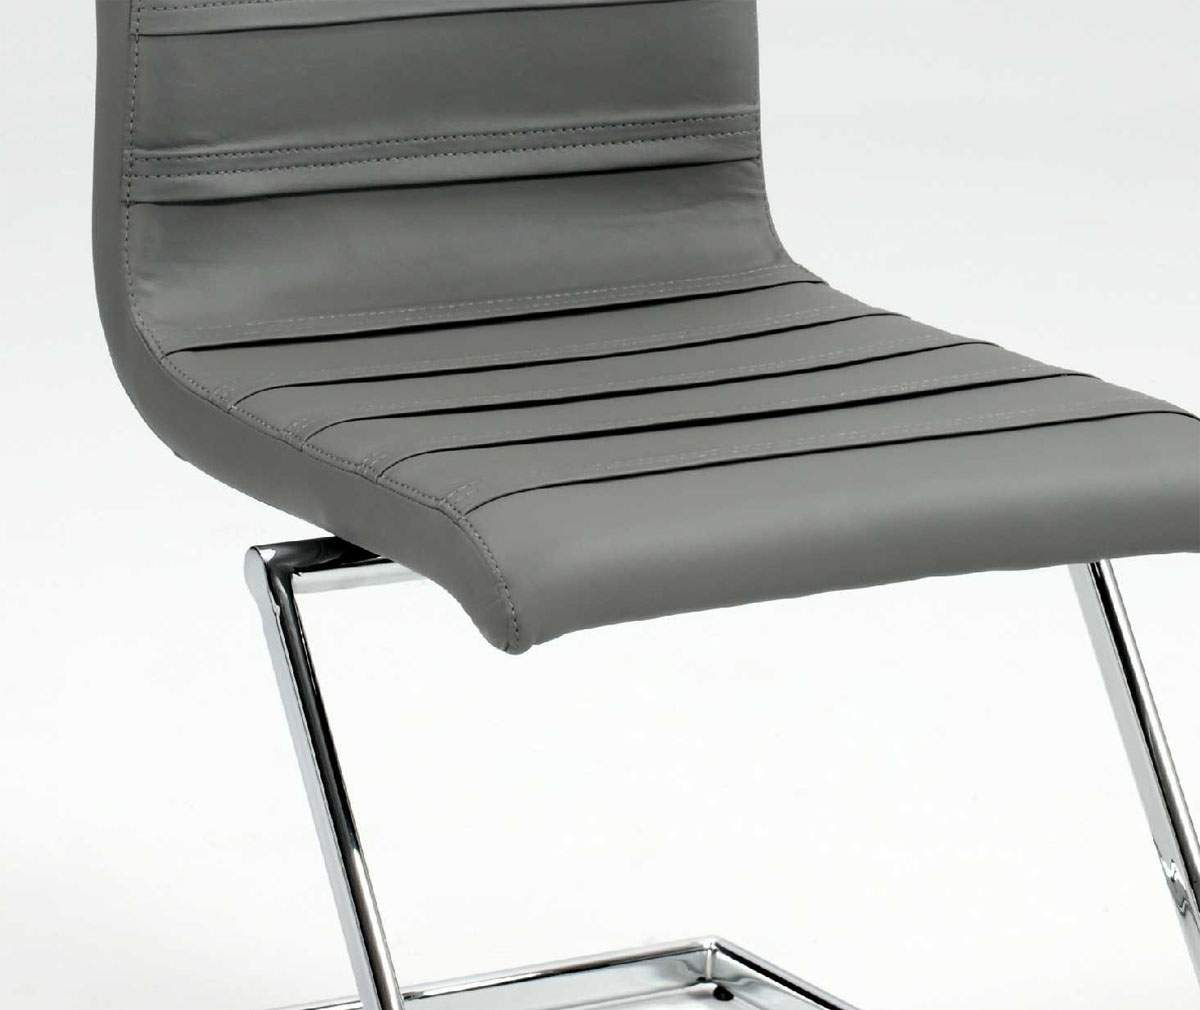 z shaped high chair all weather wicker dining chairs contemporary dark grey leather with chrome